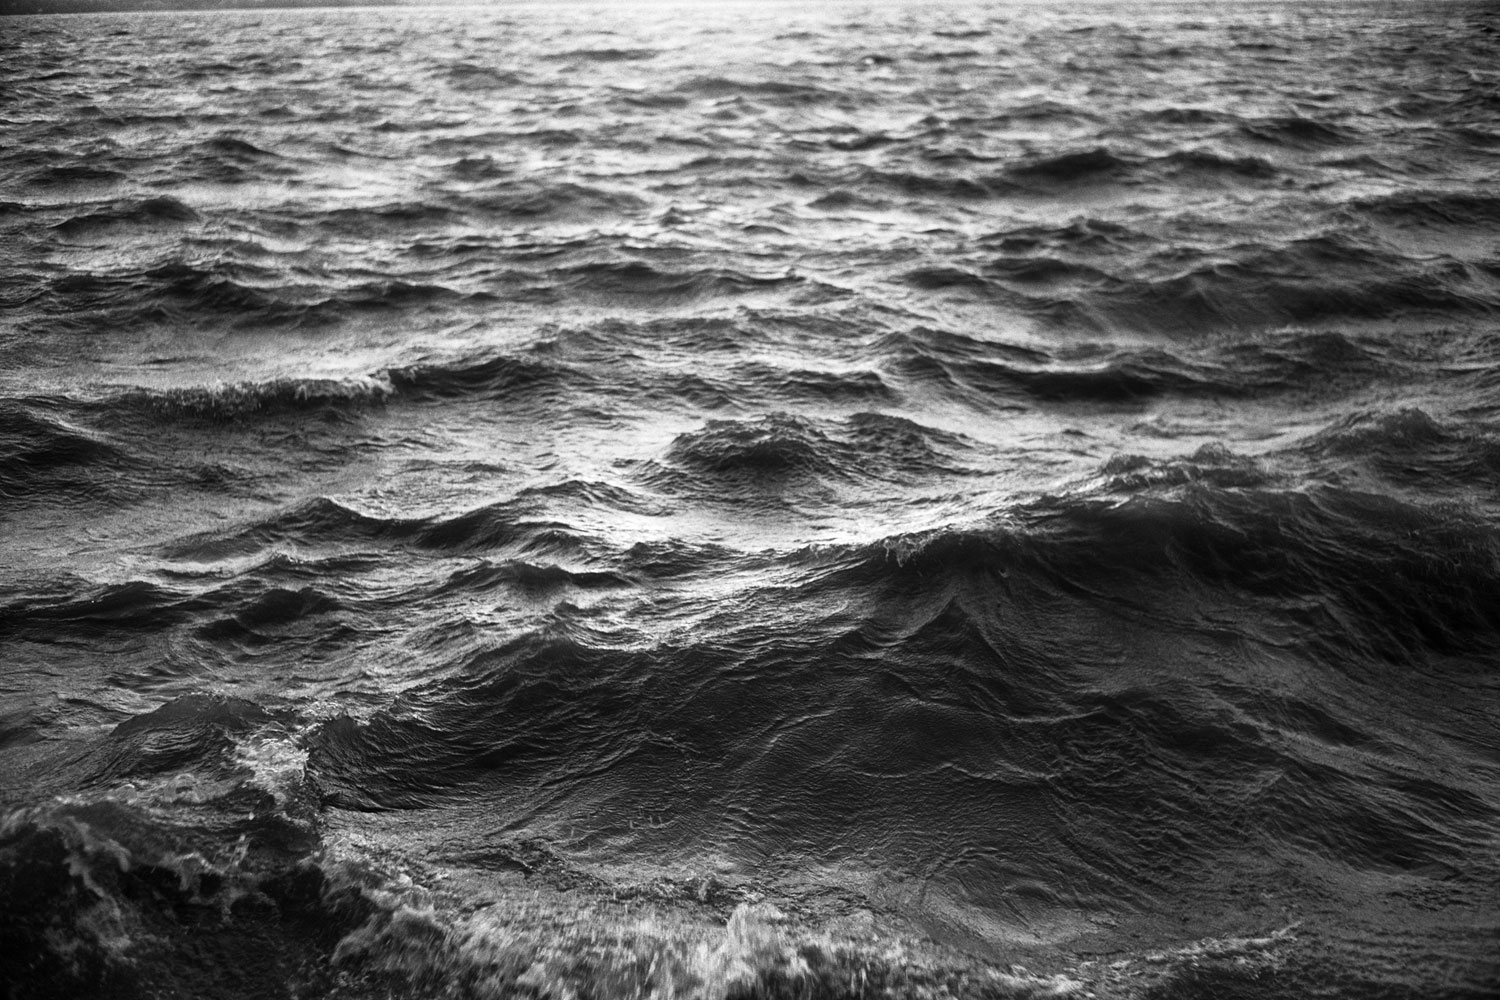 The Hudson River water, seen in high winds, from Croton Point Park. 2010.